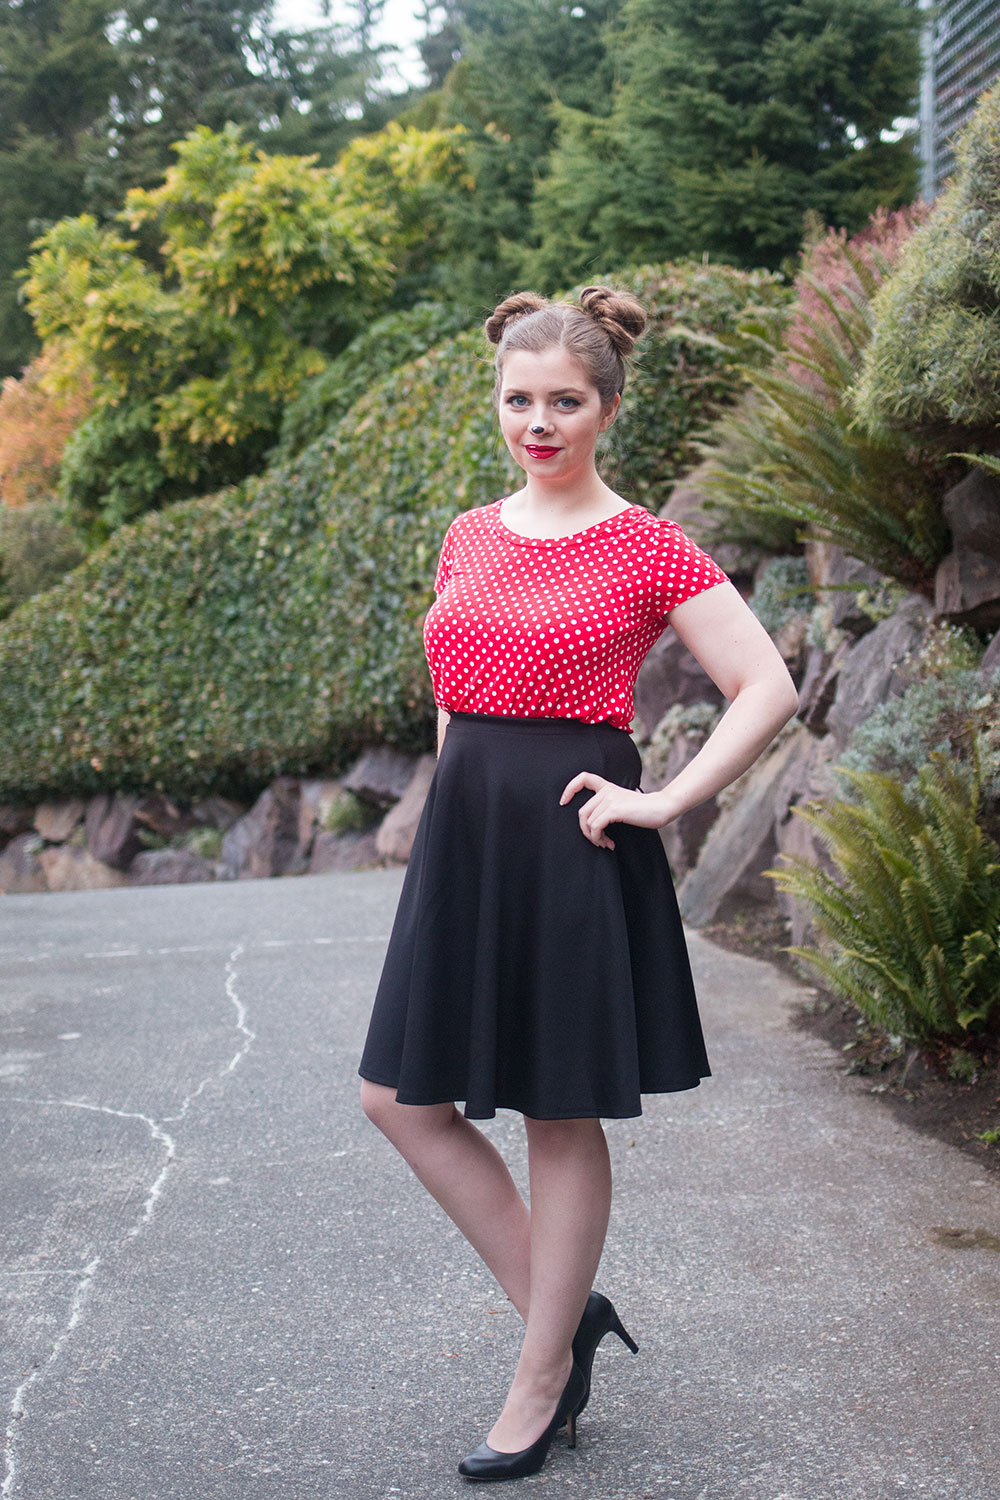 DIY Minnie Mouse Costume for Women // Halloween Costumes to Wear to Work // Hello Rigby Seattle Fashion Blog